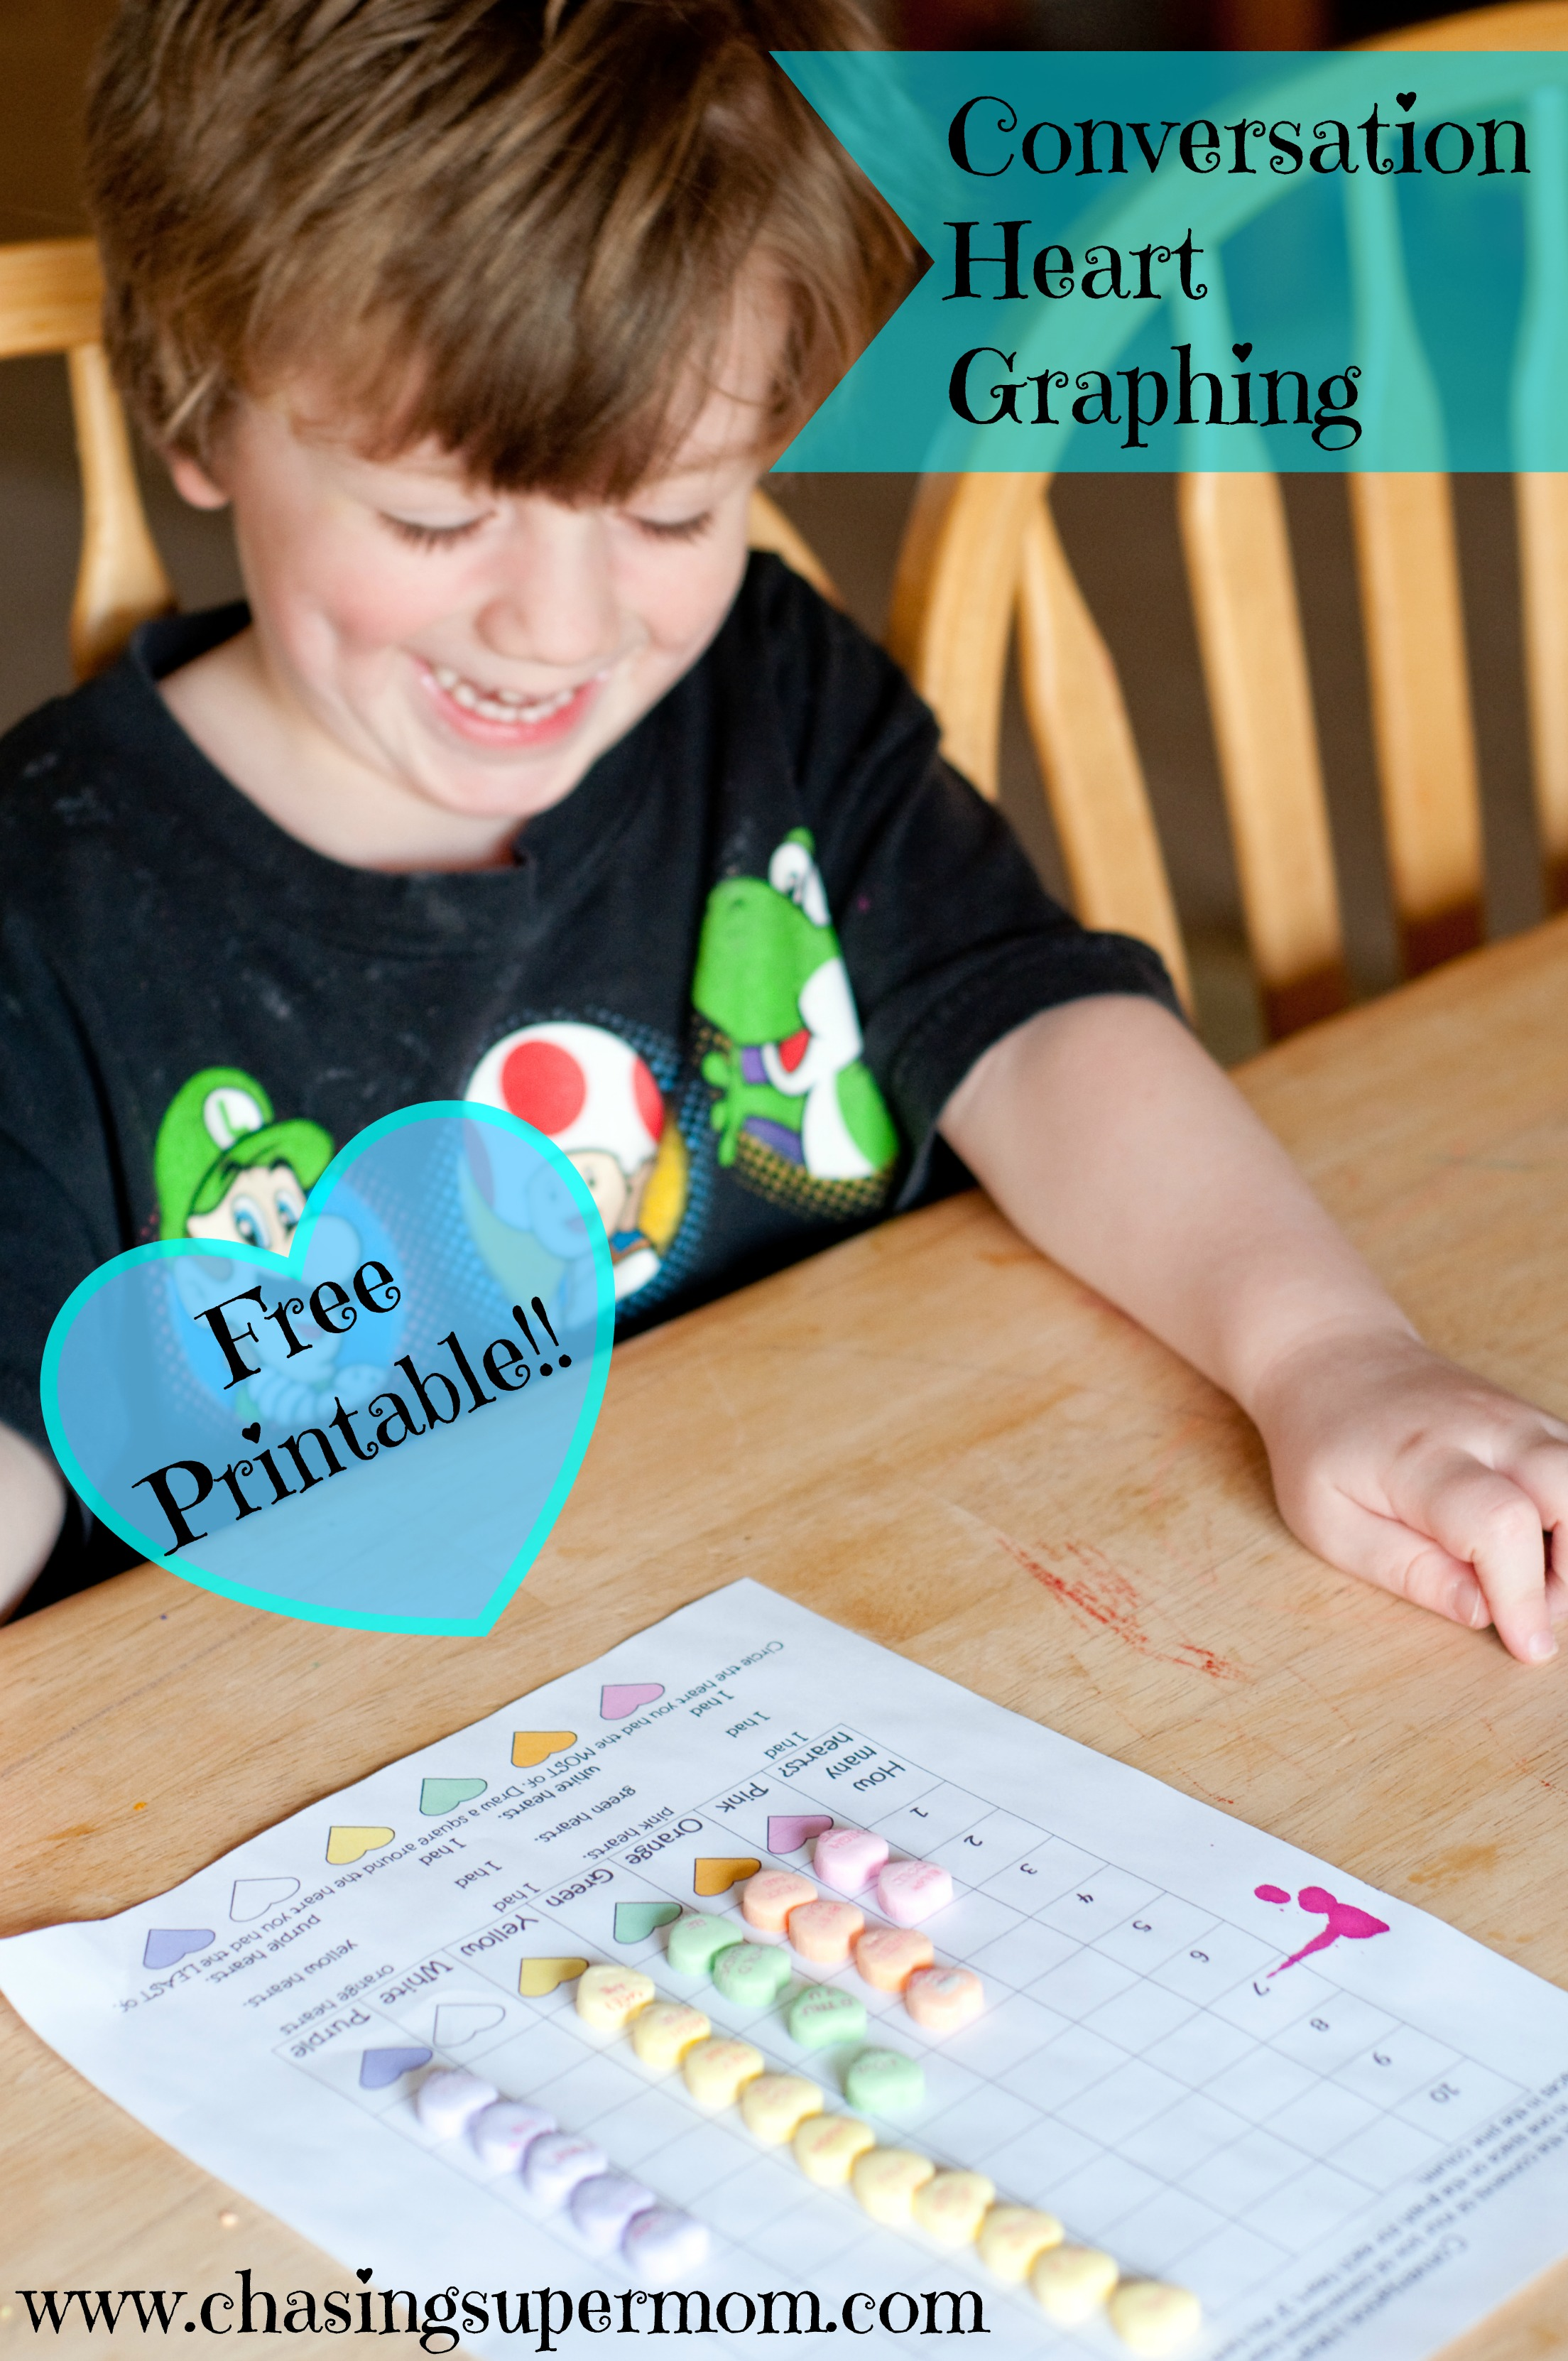 Conversation Hearts Graphing Worksheet